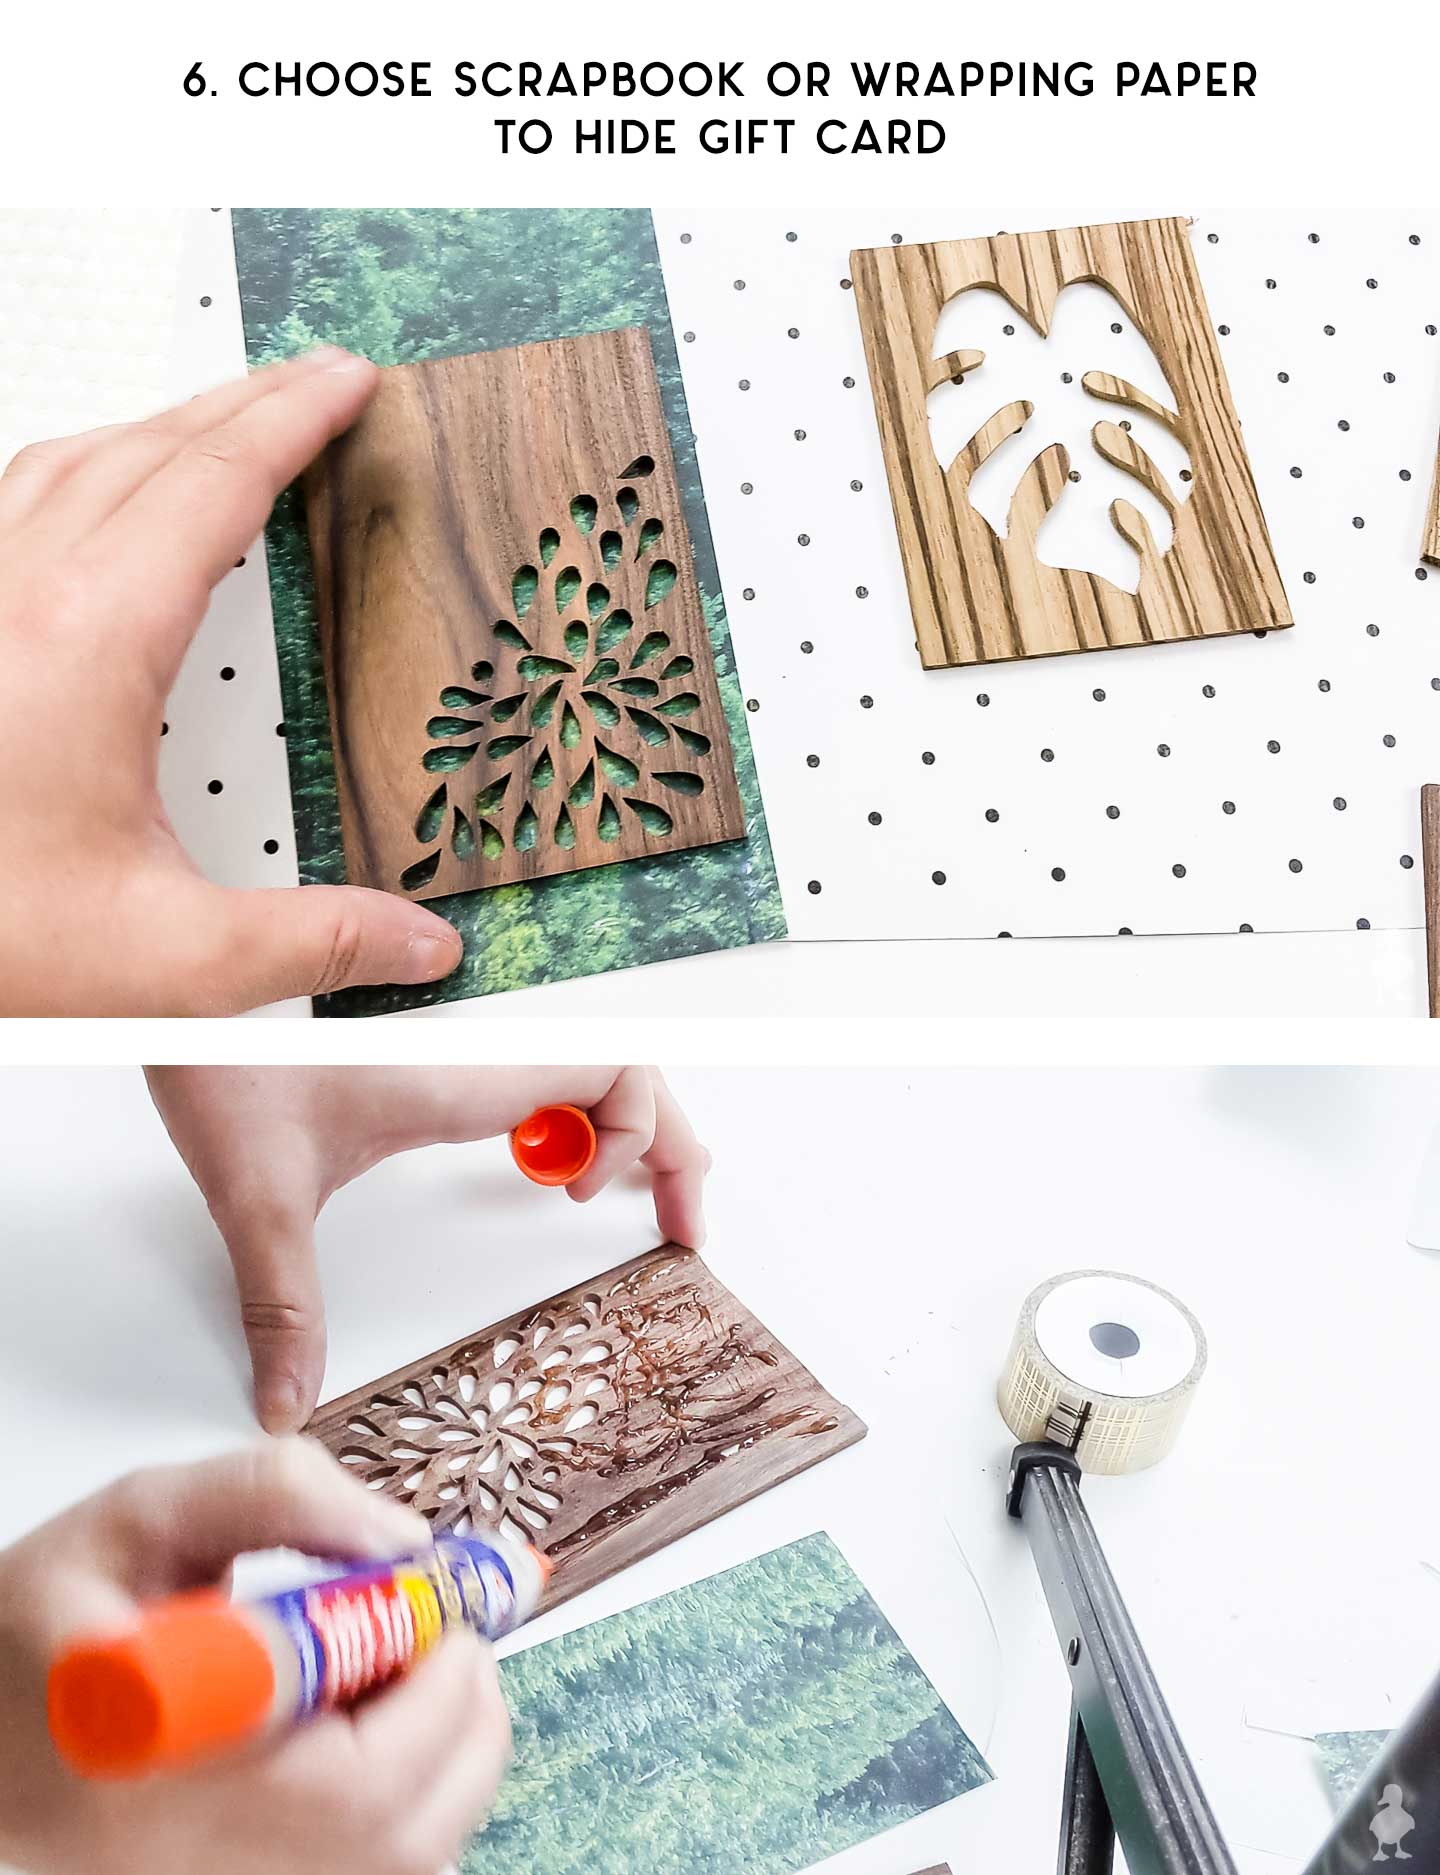 select scrapbook paper and attach to gift card or inside of gift card holder